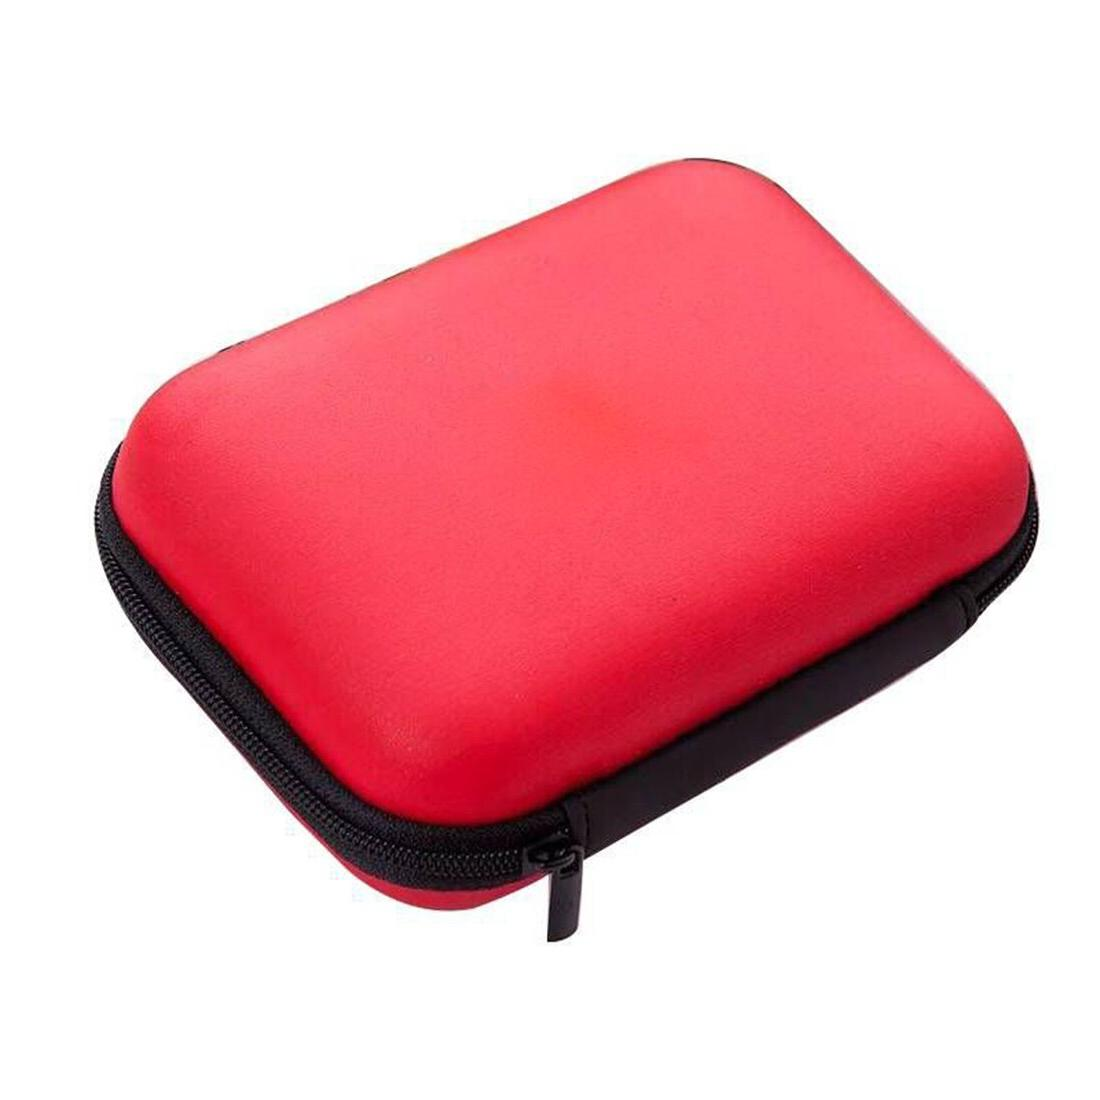 2.5 inch External Drive Disk Protective HDD <font><b>Carry</b></font> Bag Portable Pouch USB Cable Power